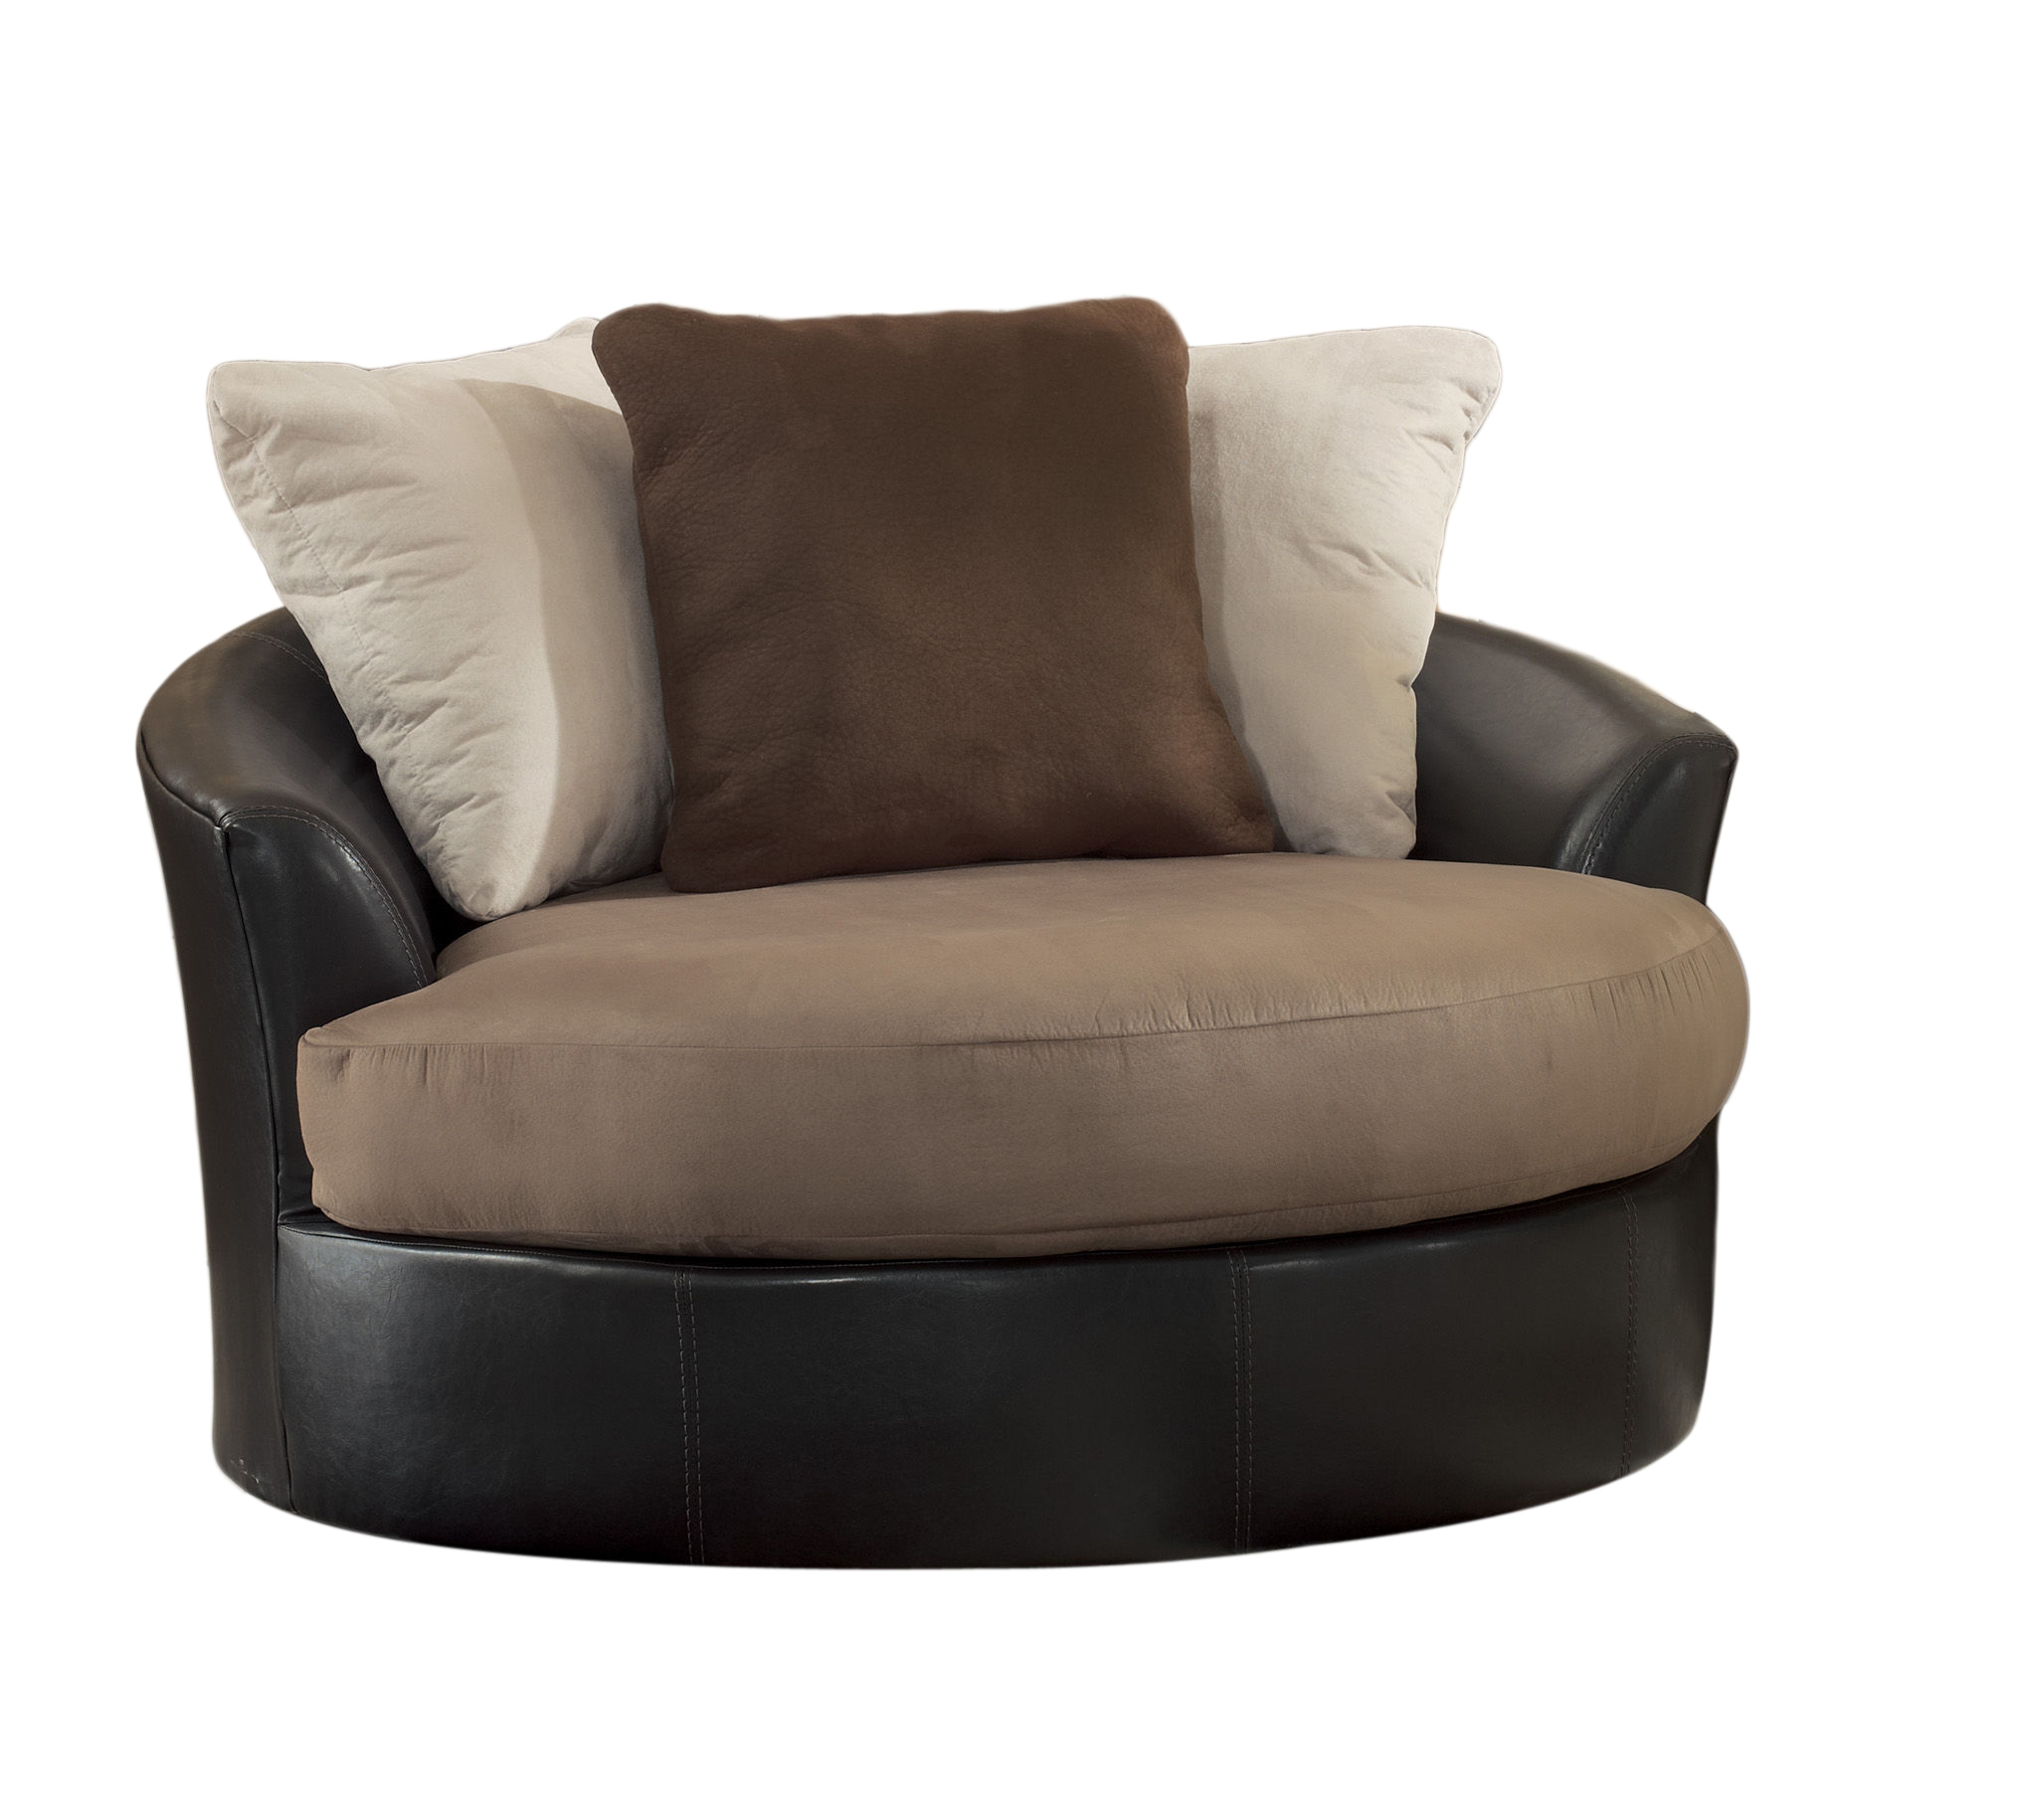 design oversized type swivel styles chair home